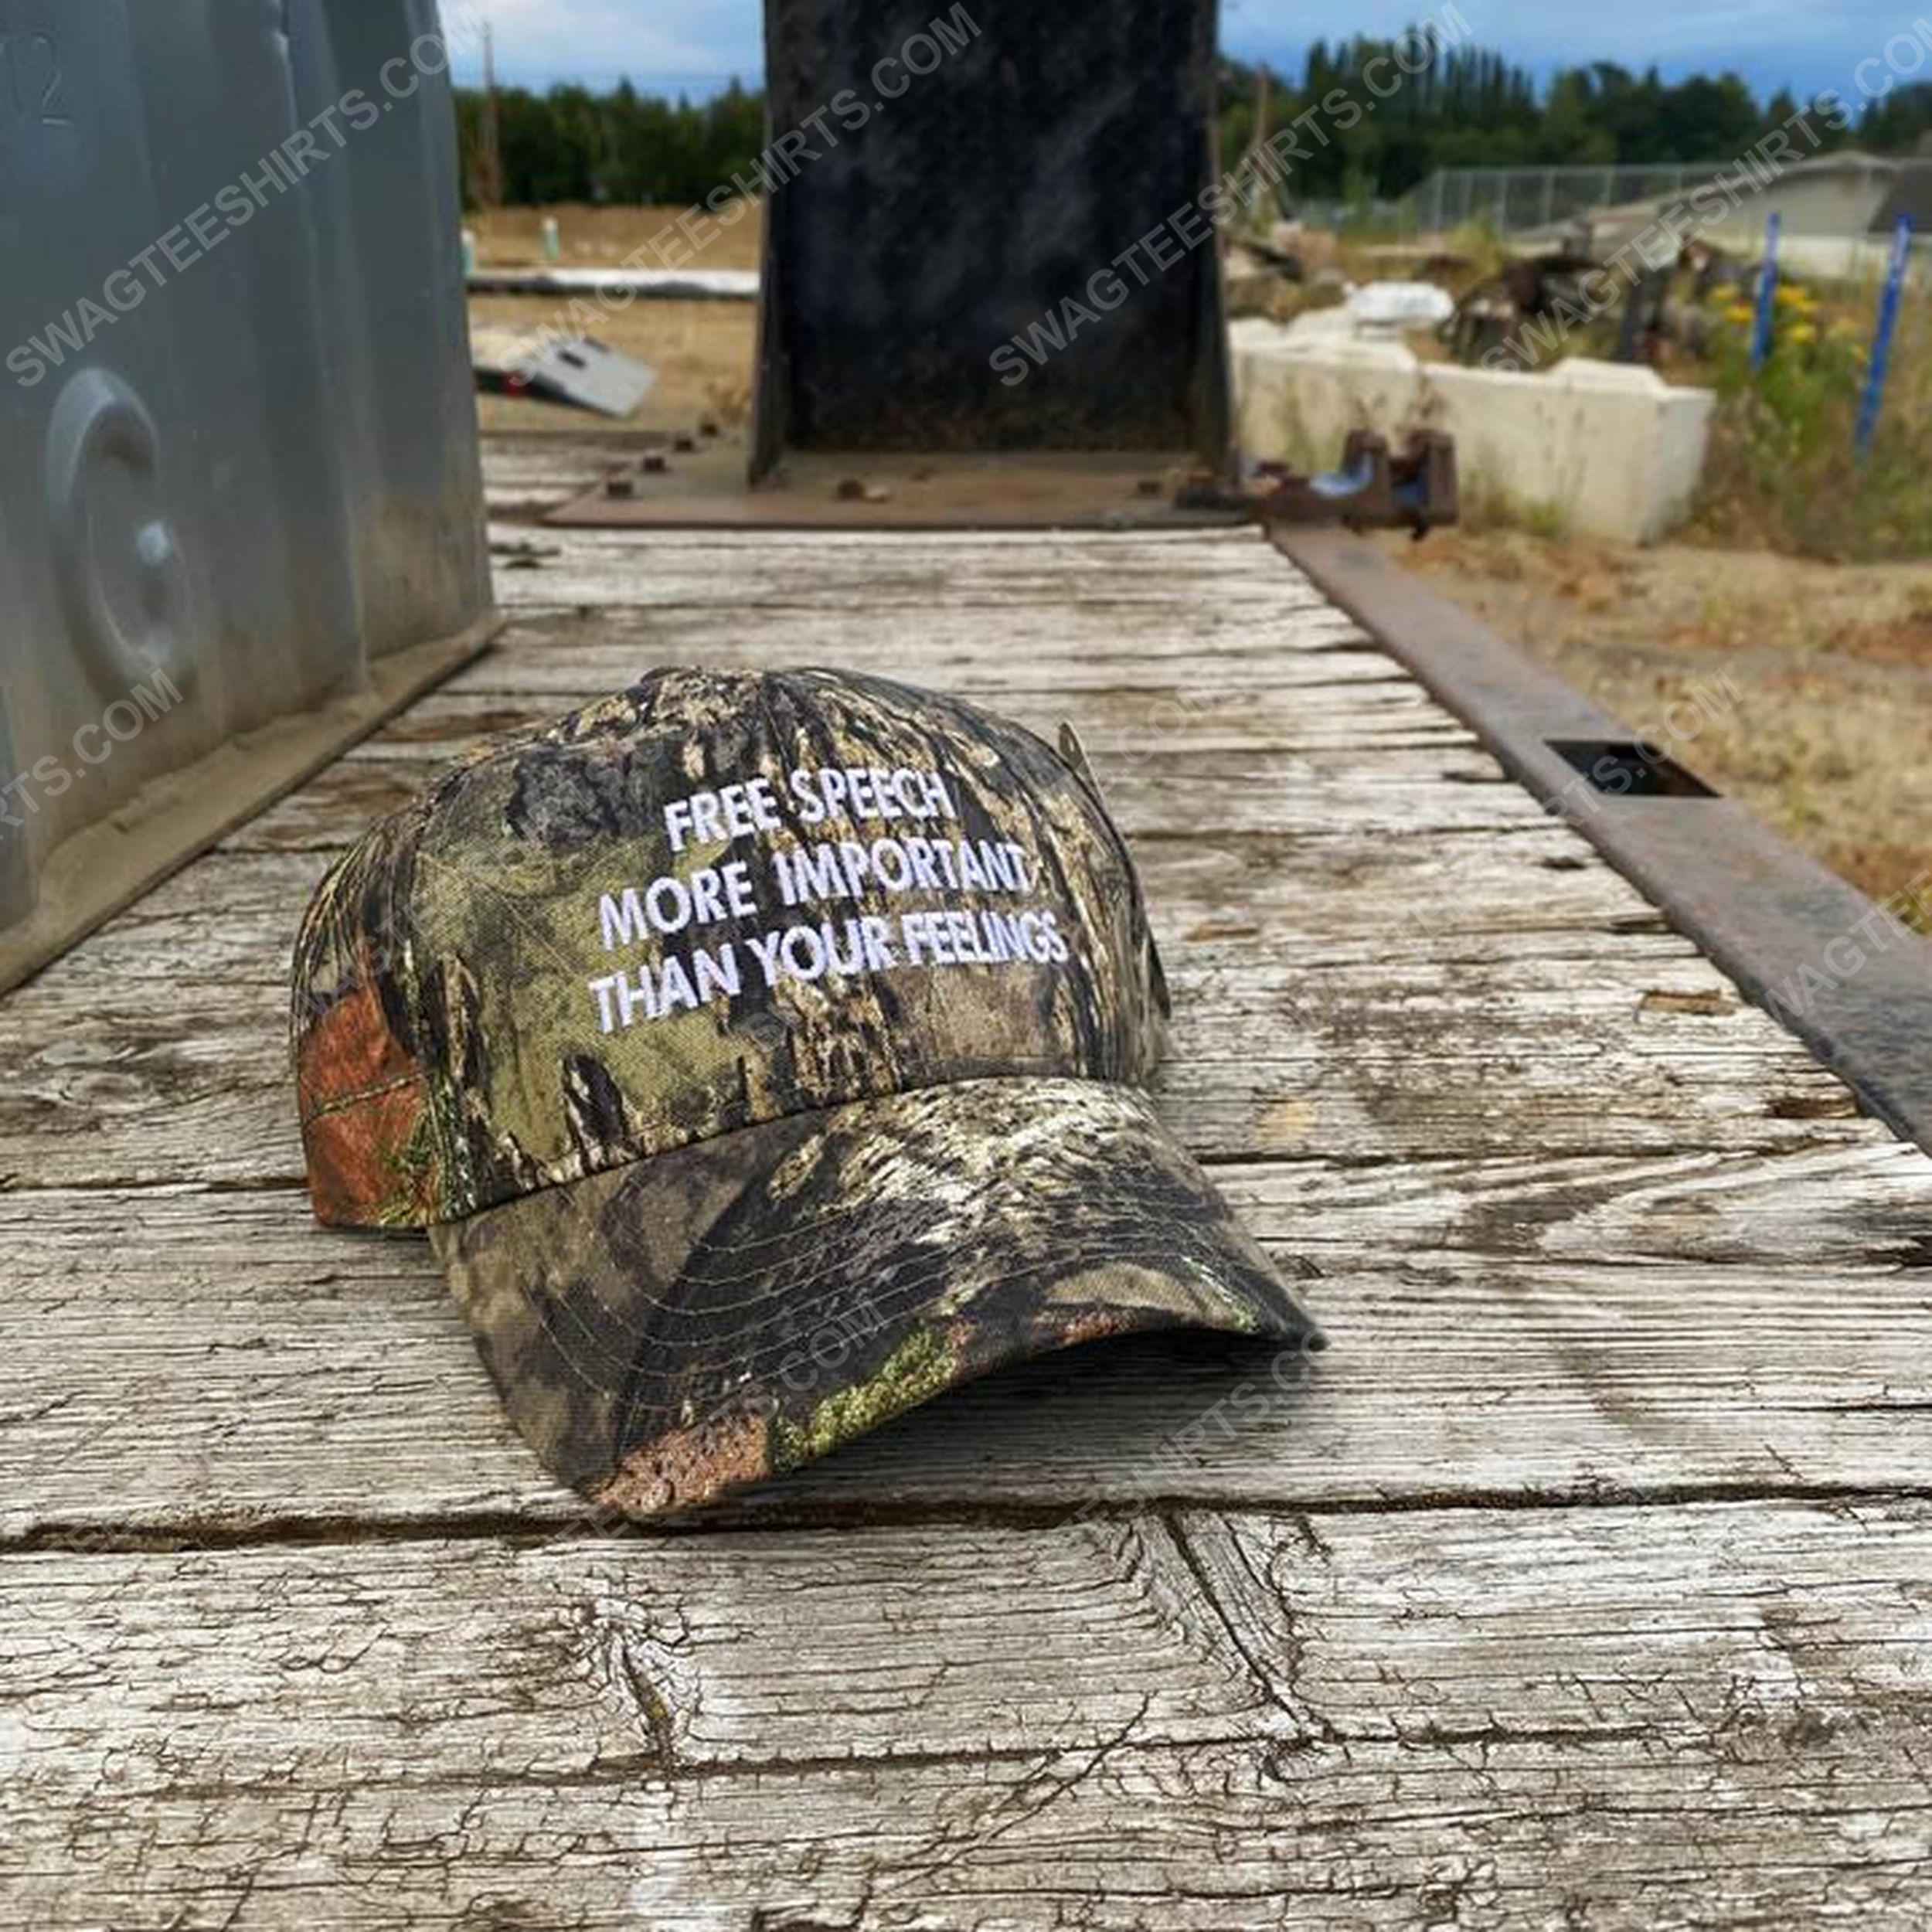 Camo free speech more important than your feelings full print classic hat 1